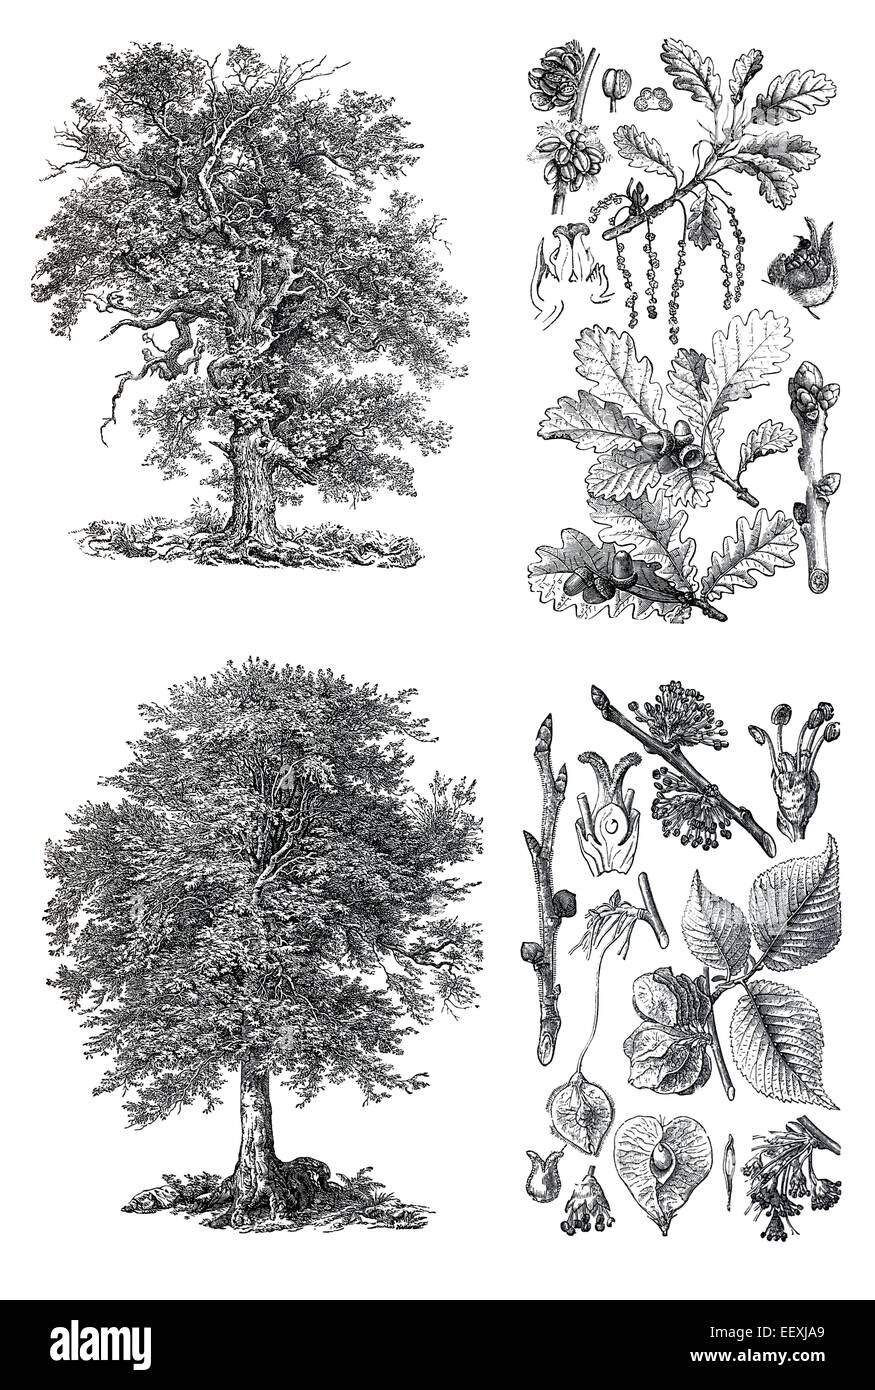 Retro vintage silhouettes of a oak trees an engraving illustration retro vintage silhouettes of a oak trees an engraving illustration from the public domain dictionary published in 1905 isol thecheapjerseys Gallery